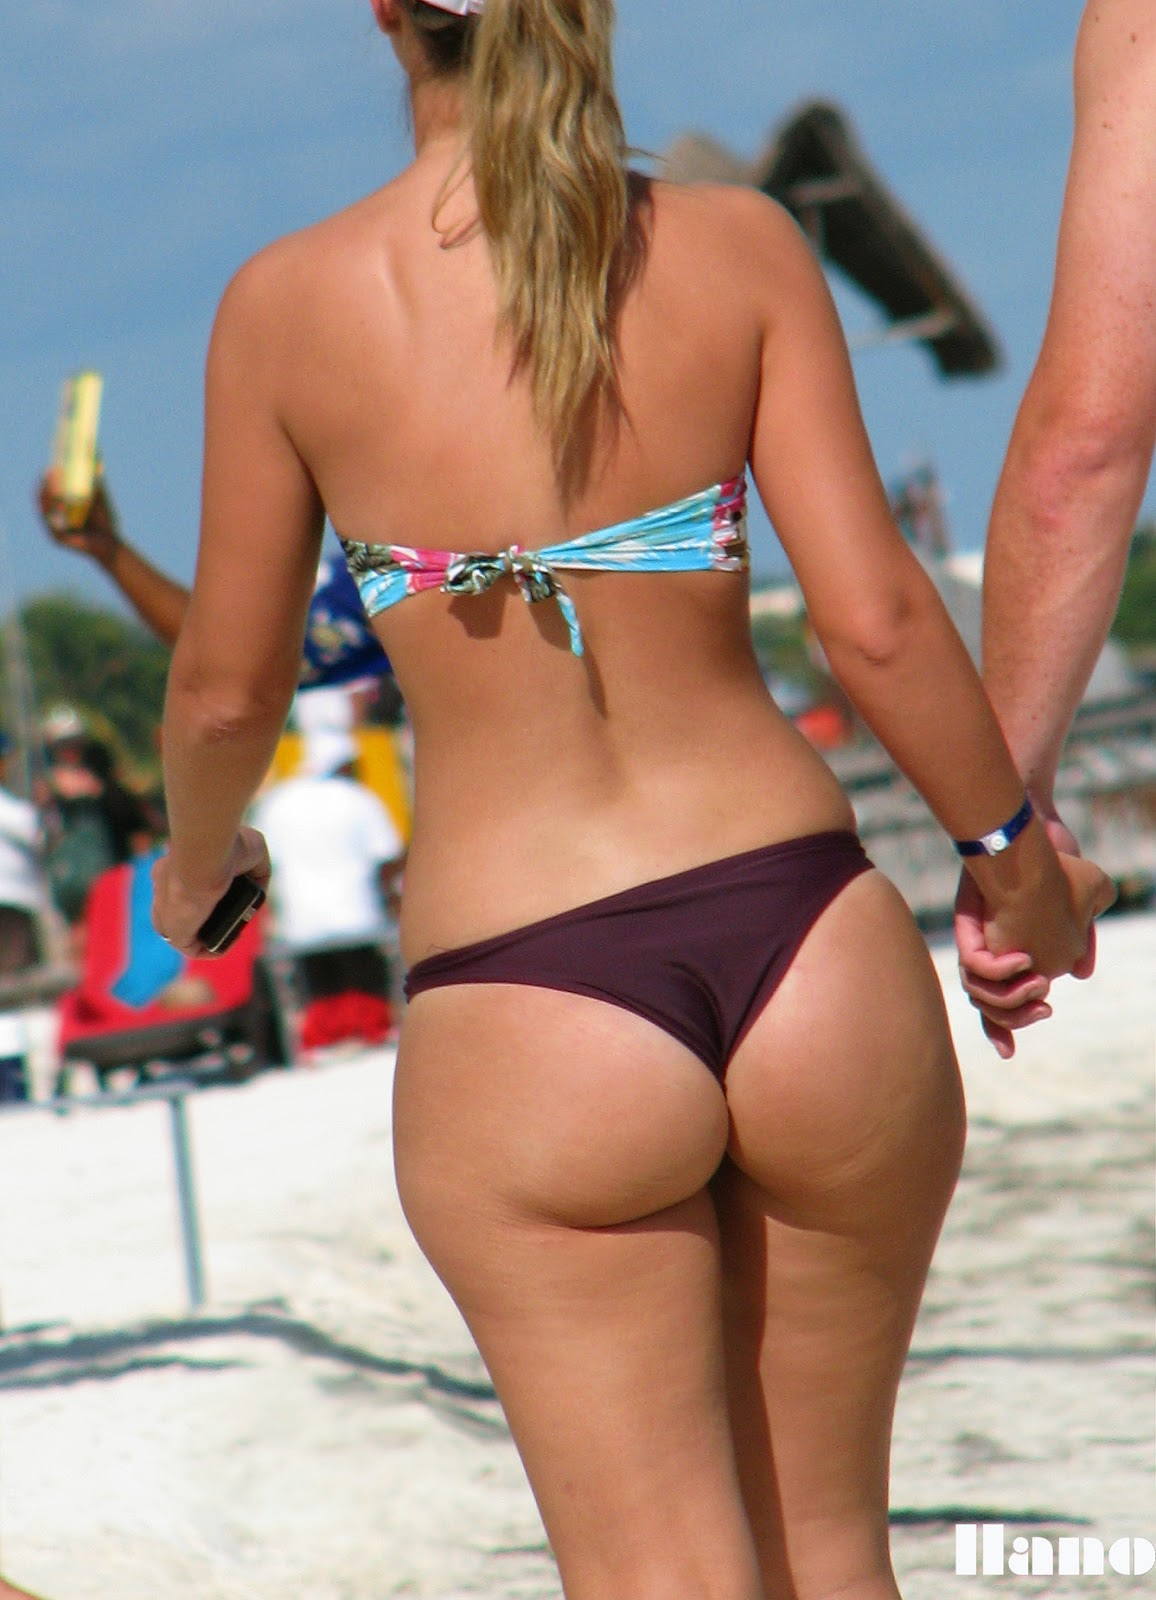 Huge thick juicy candid booty in thong bikini showing pawg ass 8